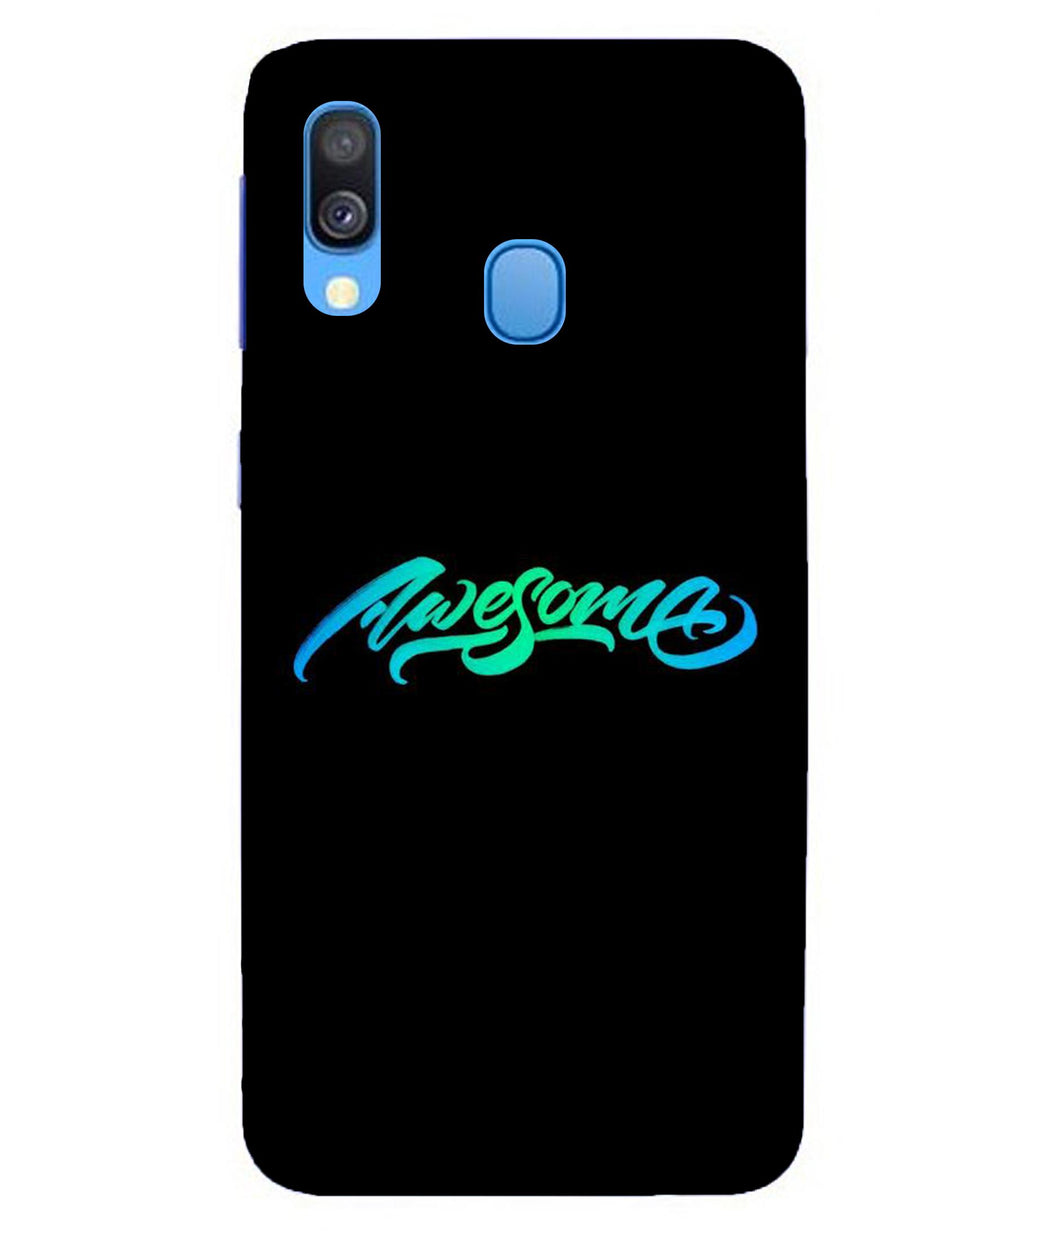 Samsung A40 Awesome mobile cover